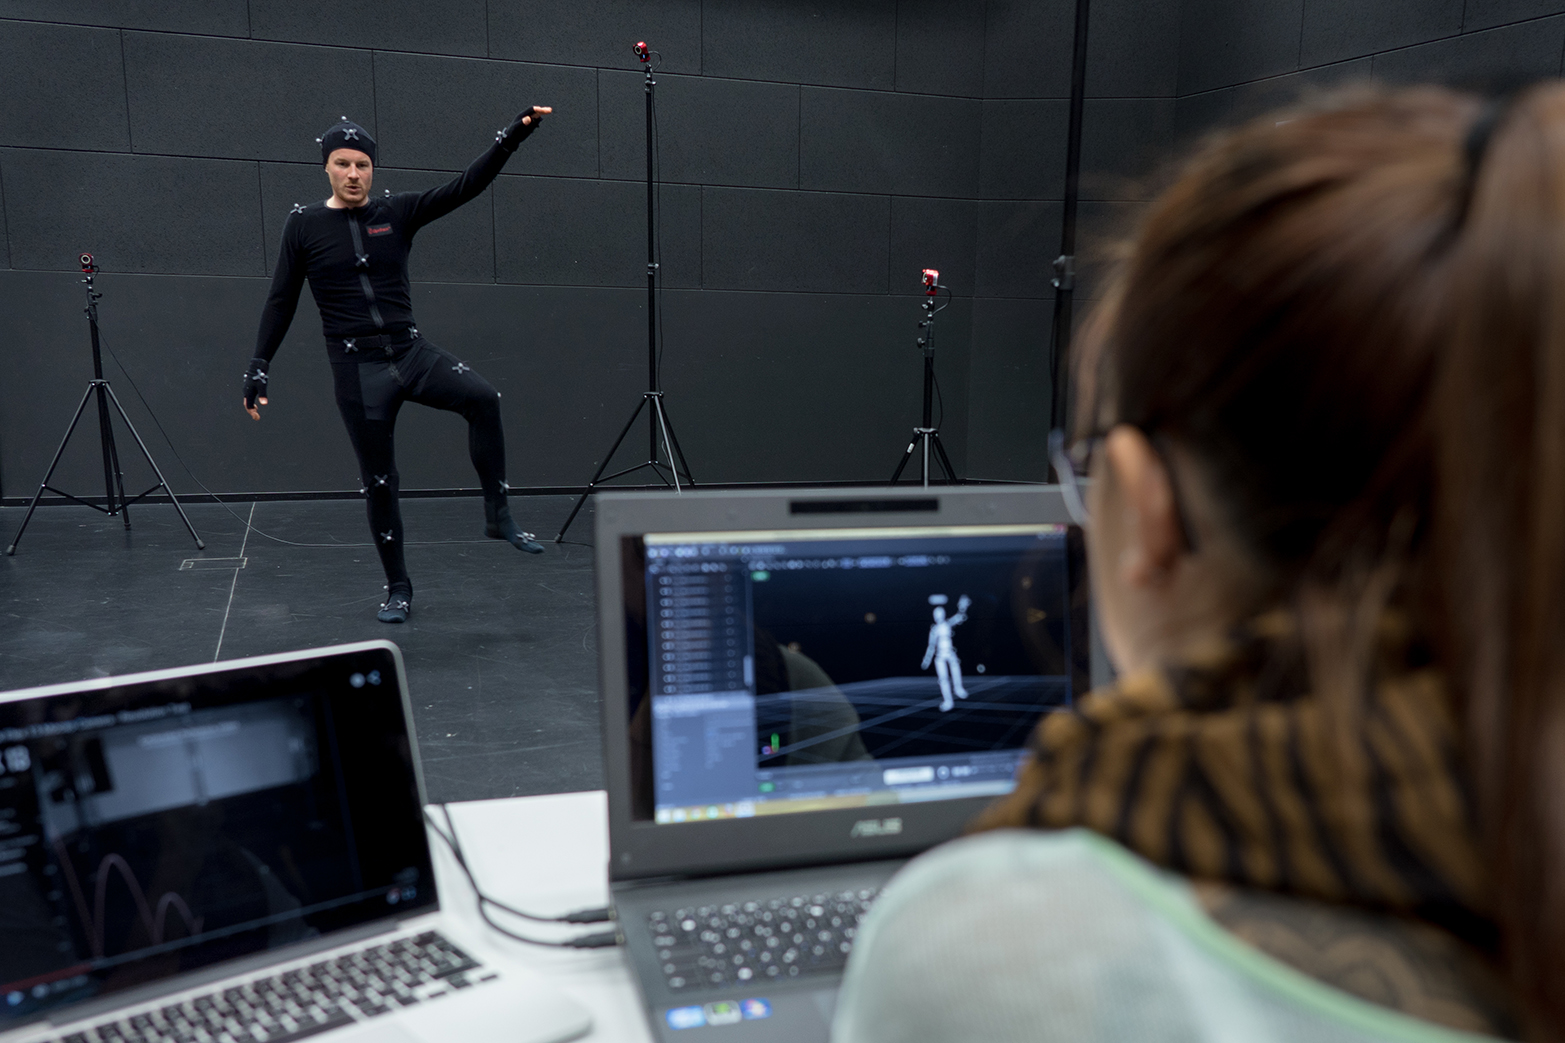 Motion Capturing System.